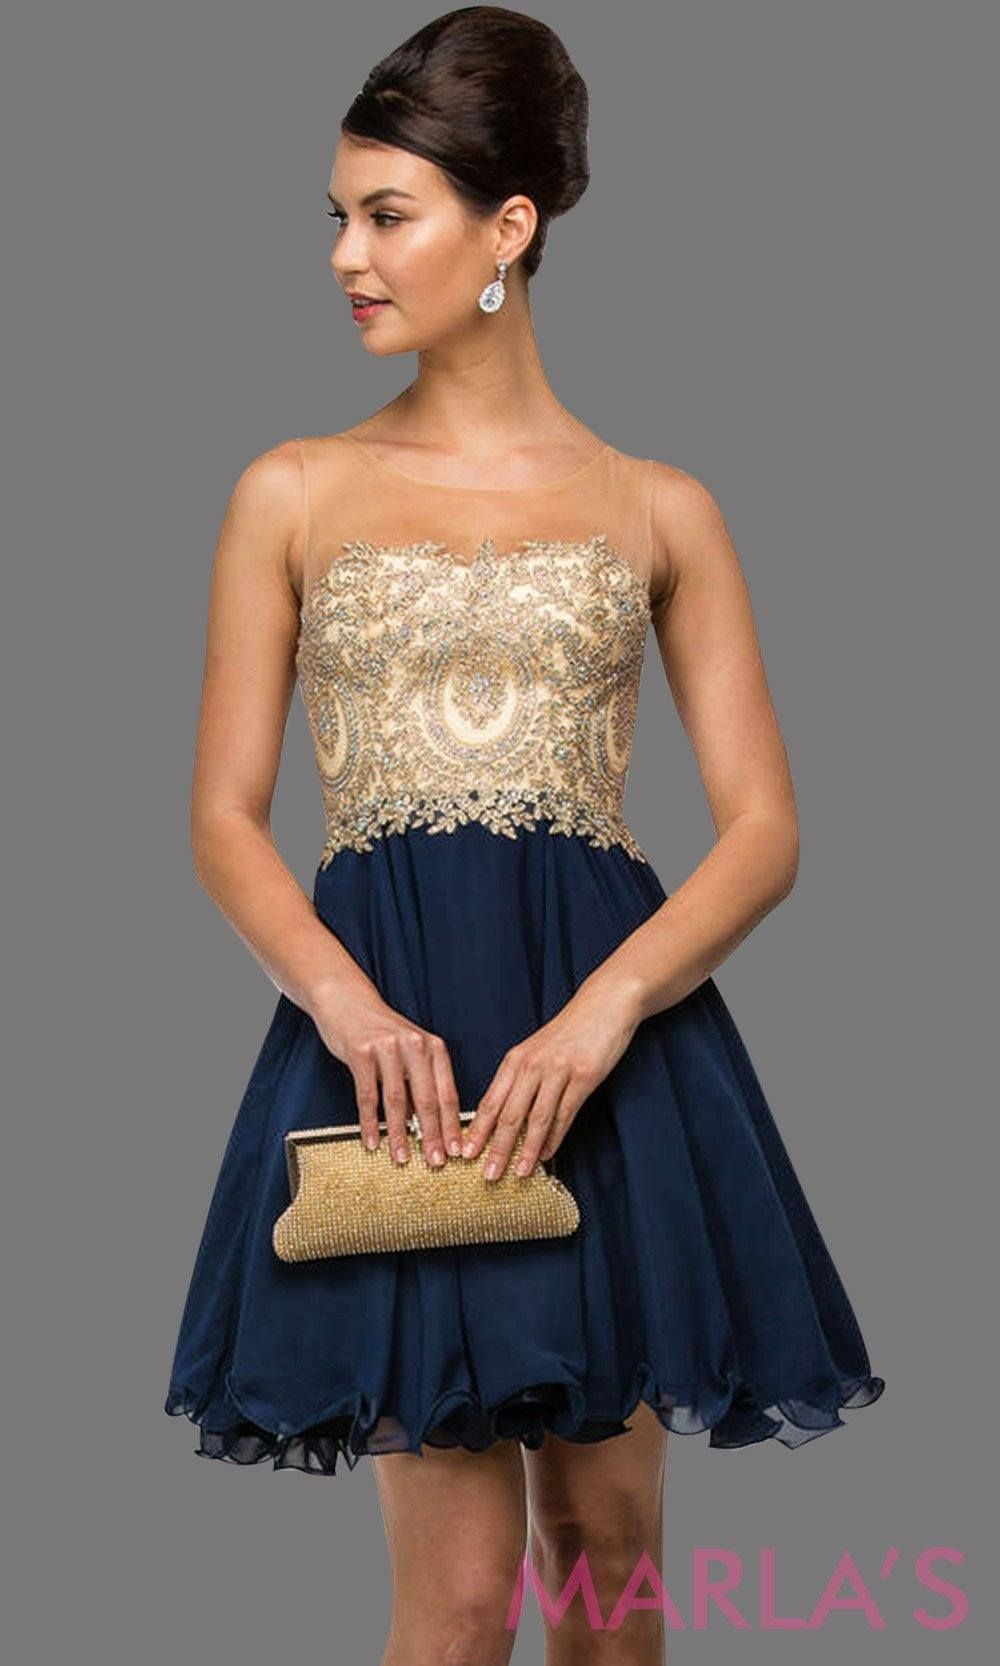 7c21c097c024 Short navy graduation dress with illusion beige bodice and flowy blue  chiffon skirt. Perfect for grade 8 grad, short pink prom dress, quinceanera  damas, ...